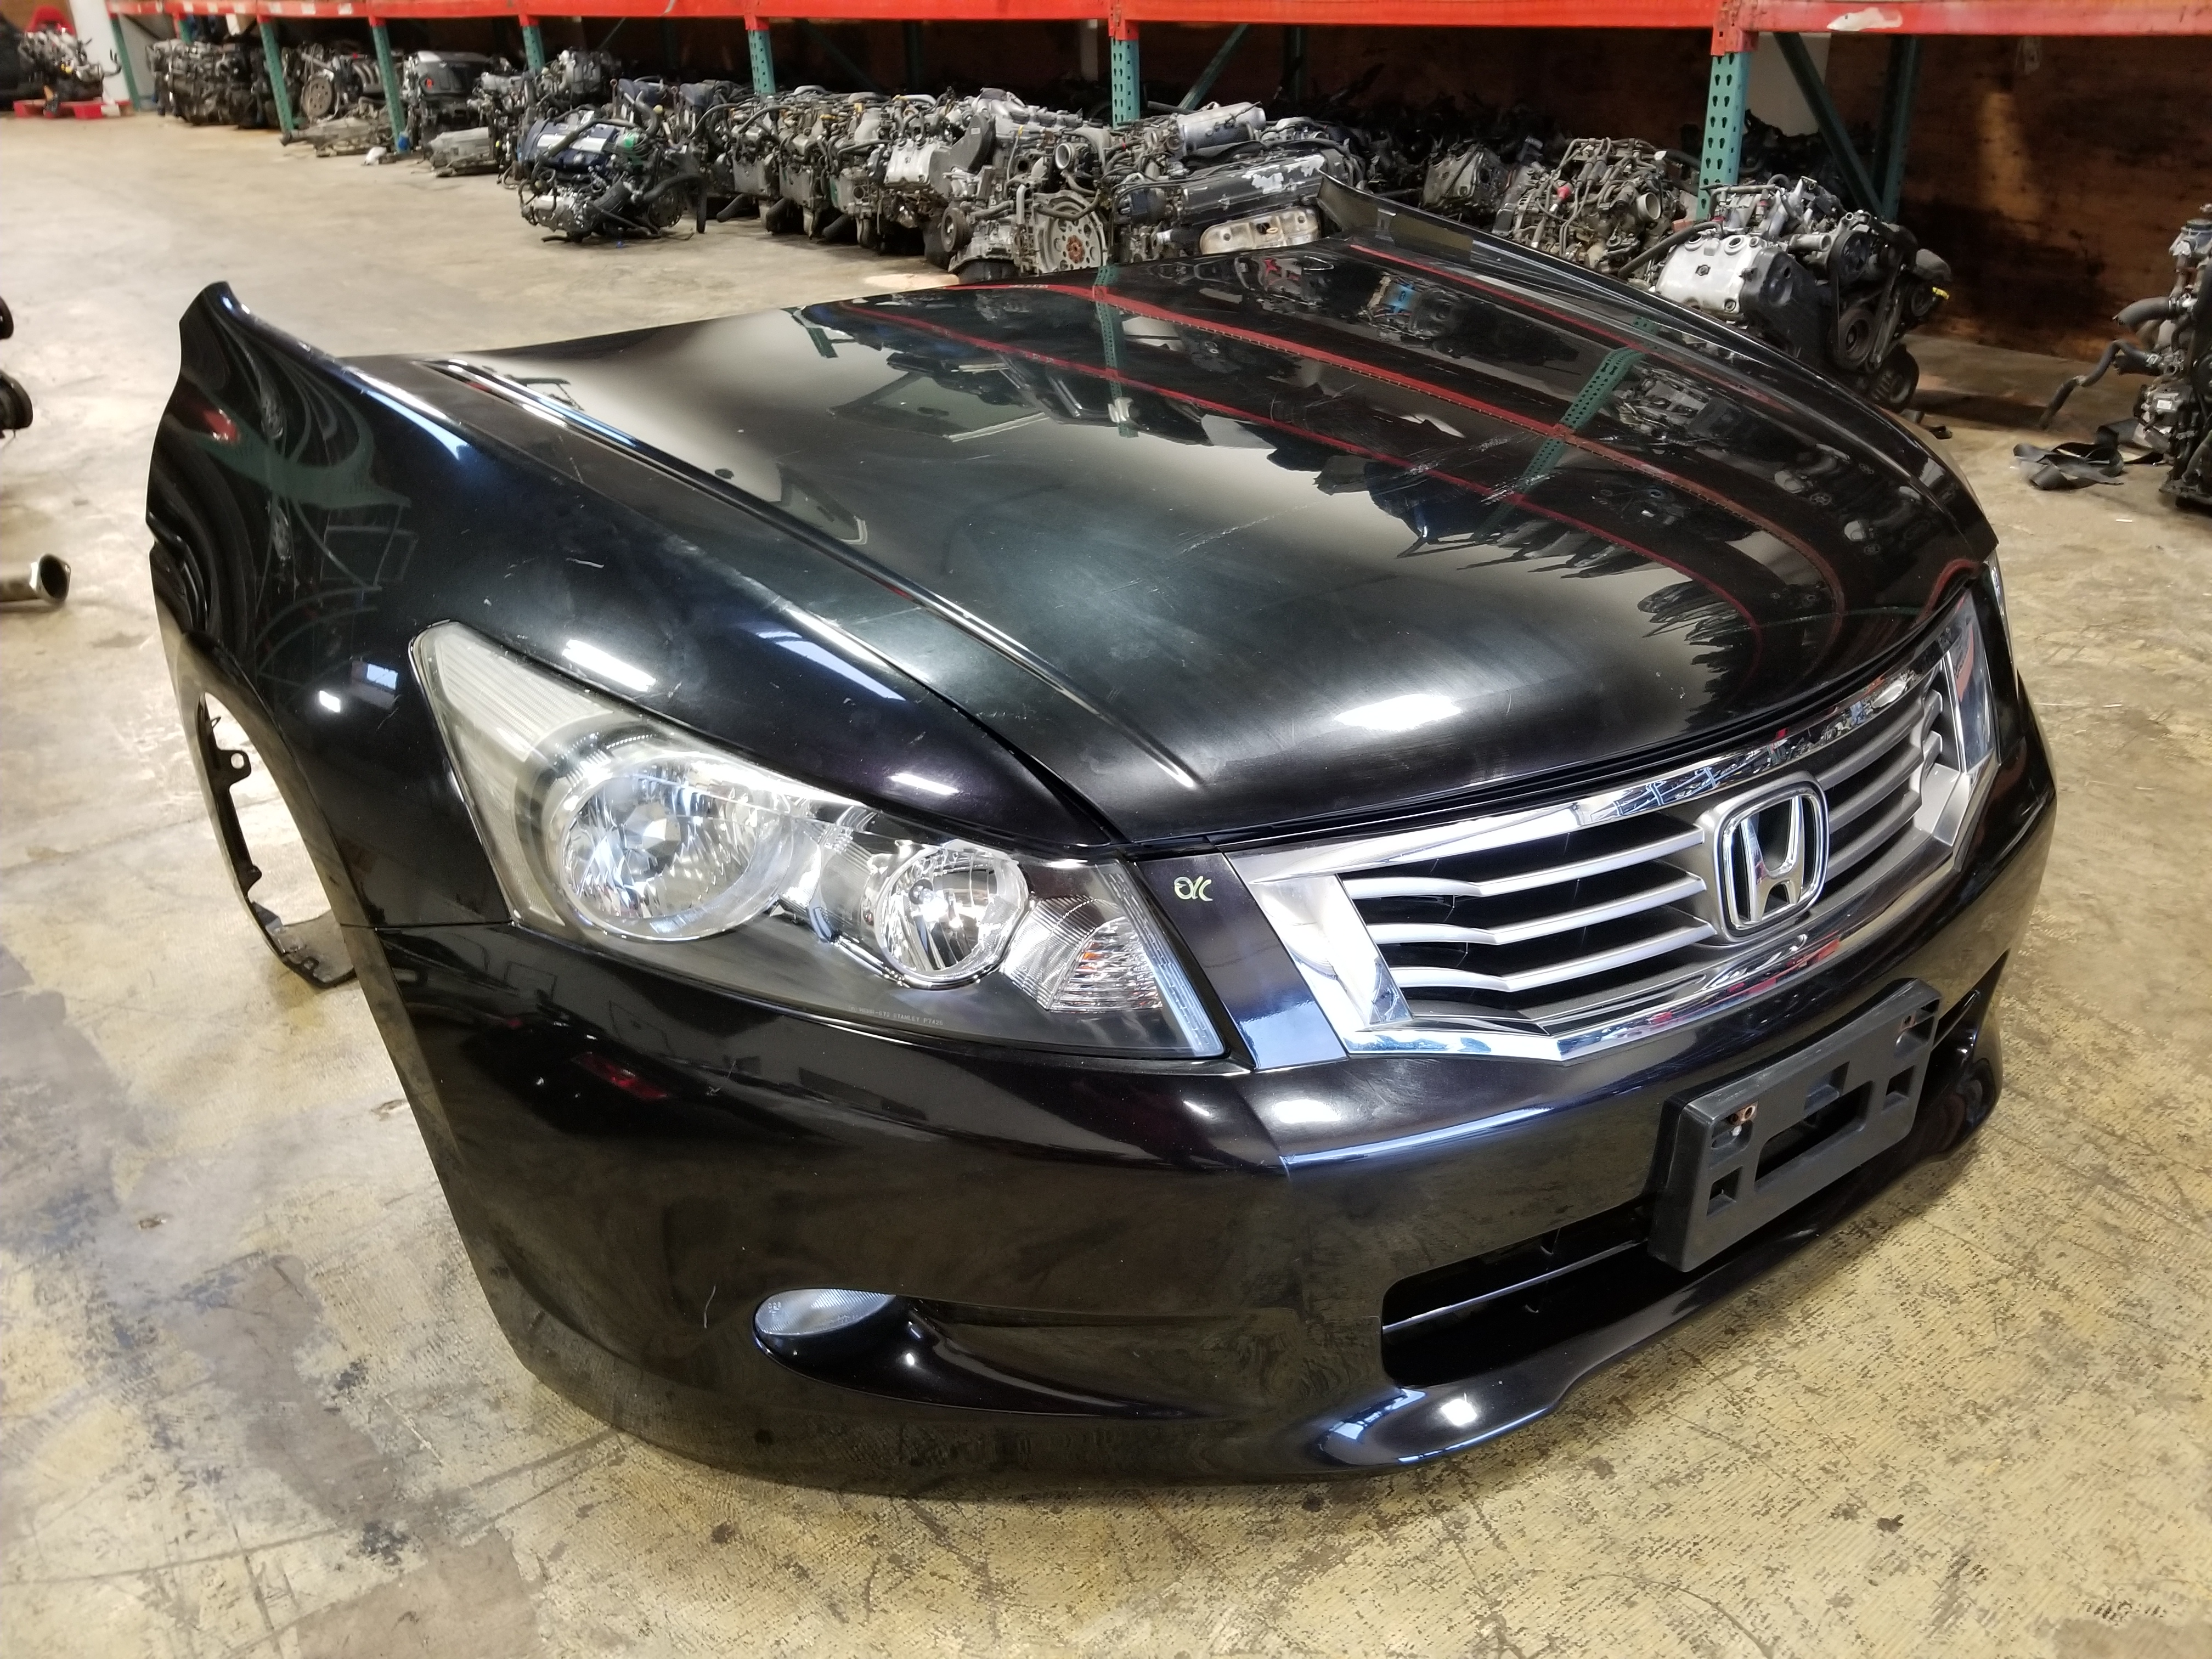 Toyota Of San Diego >> 2008 2012 Honda Inspire JDM Accord Front End Conversion ...